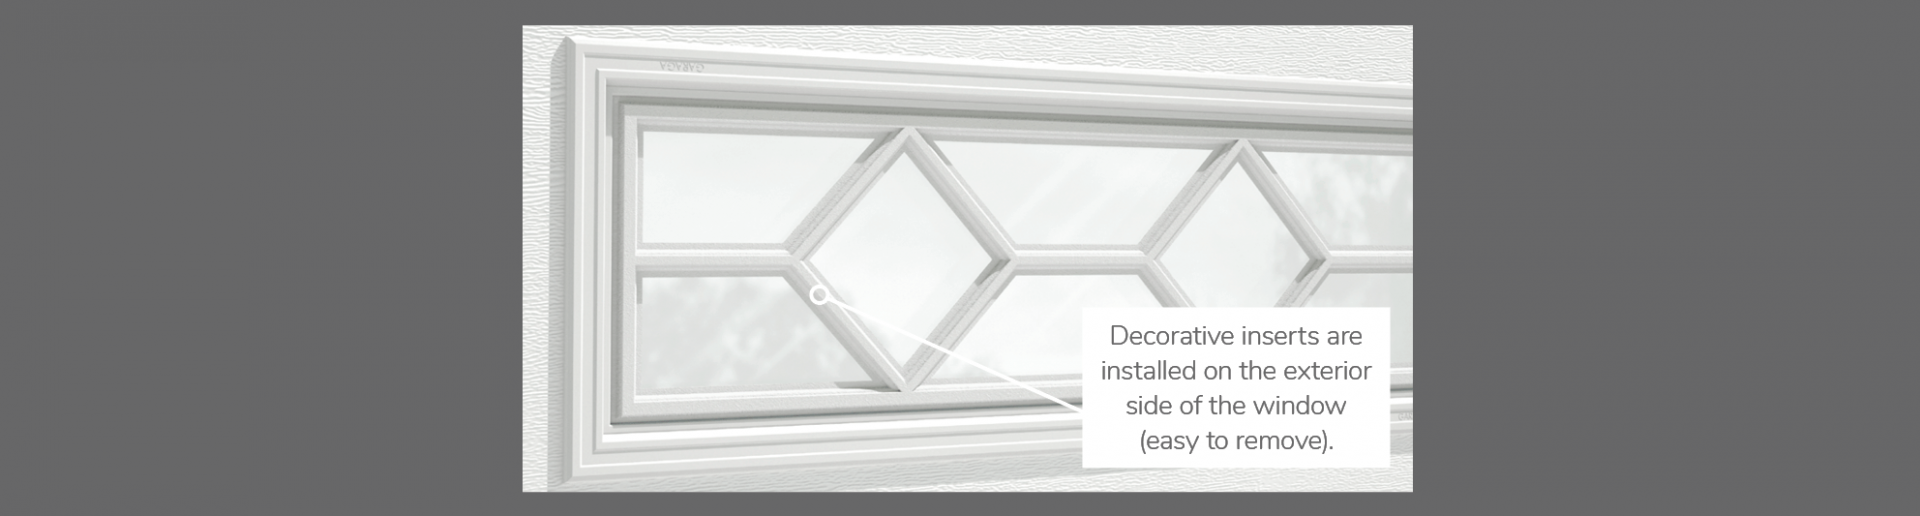 "Waterton Decorative Insert, 40"" x 13"", available for door R-16"